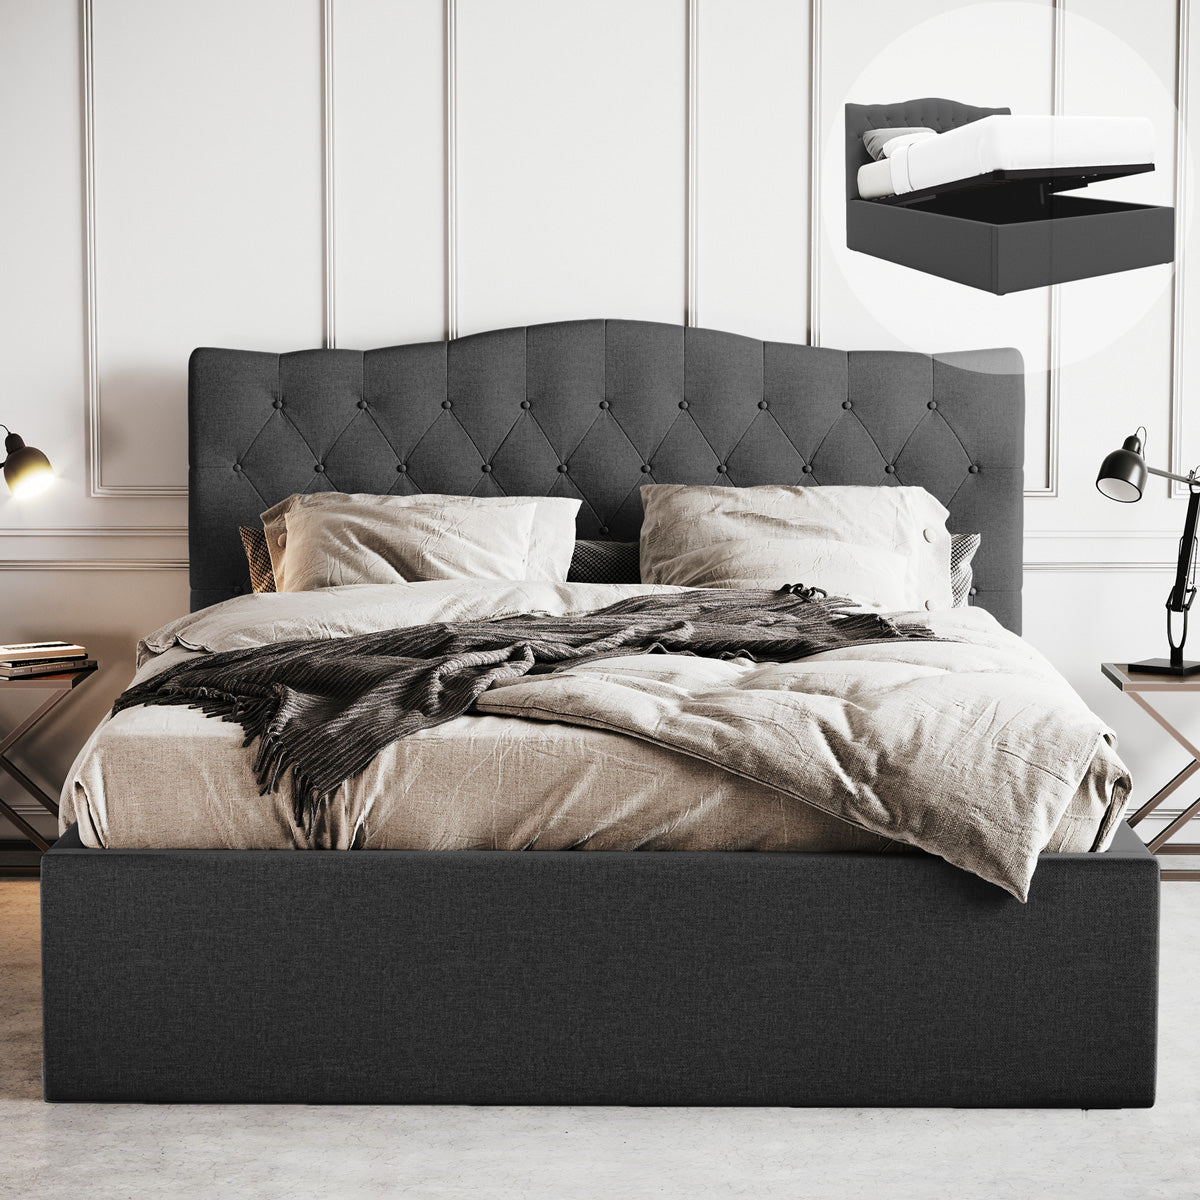 Gabrielle Gas Lift Storage Bed Frame (Charcoal Fabric)